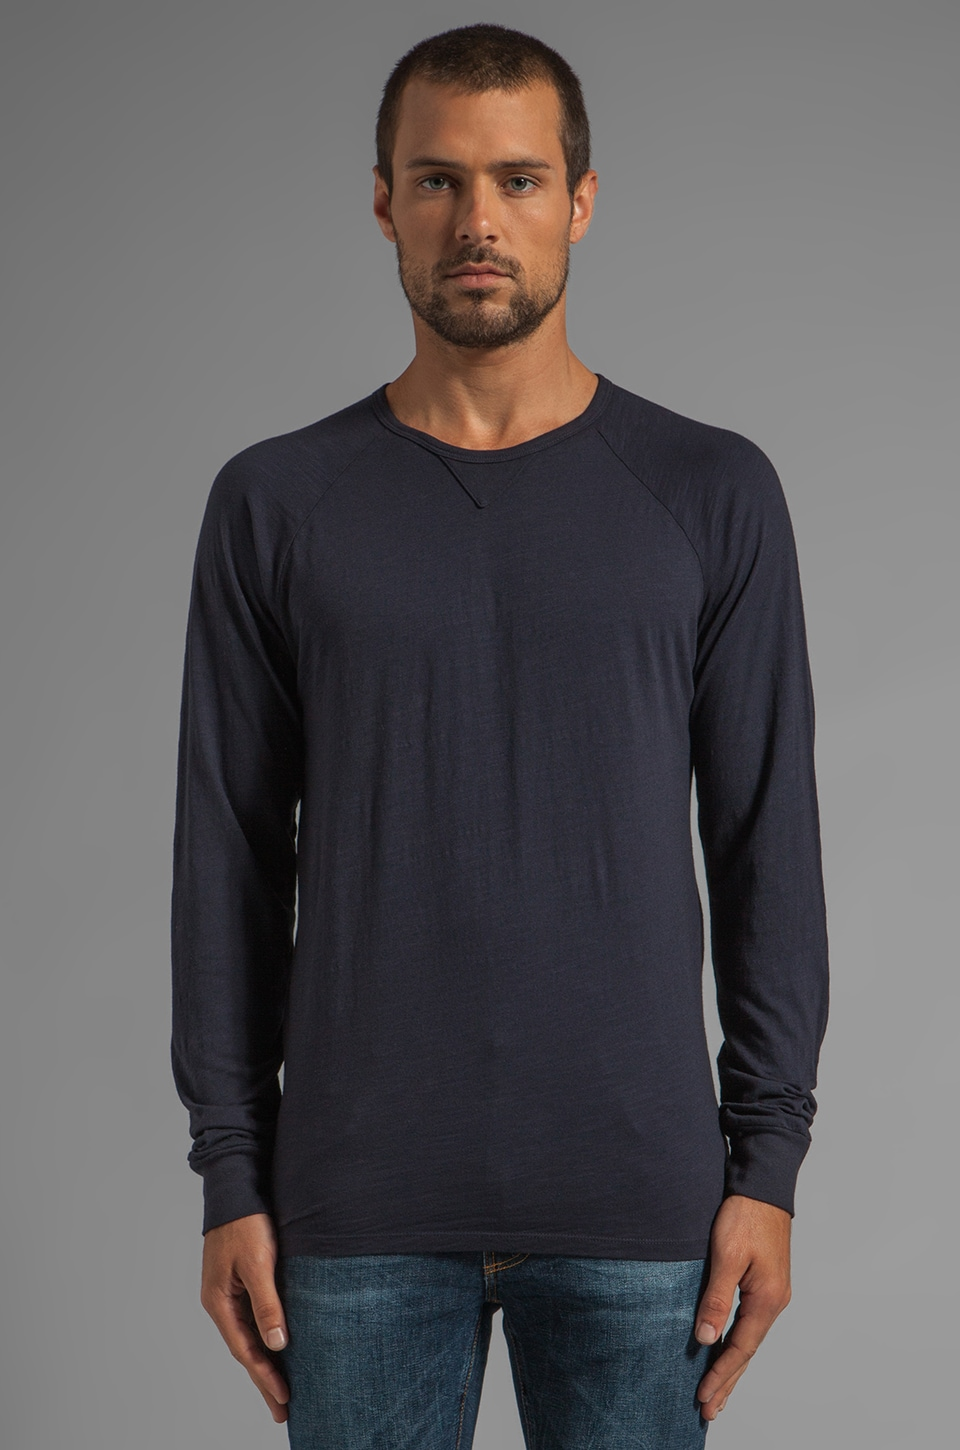 Velvet by Graham & Spencer Owen L/S Tee in Caspian